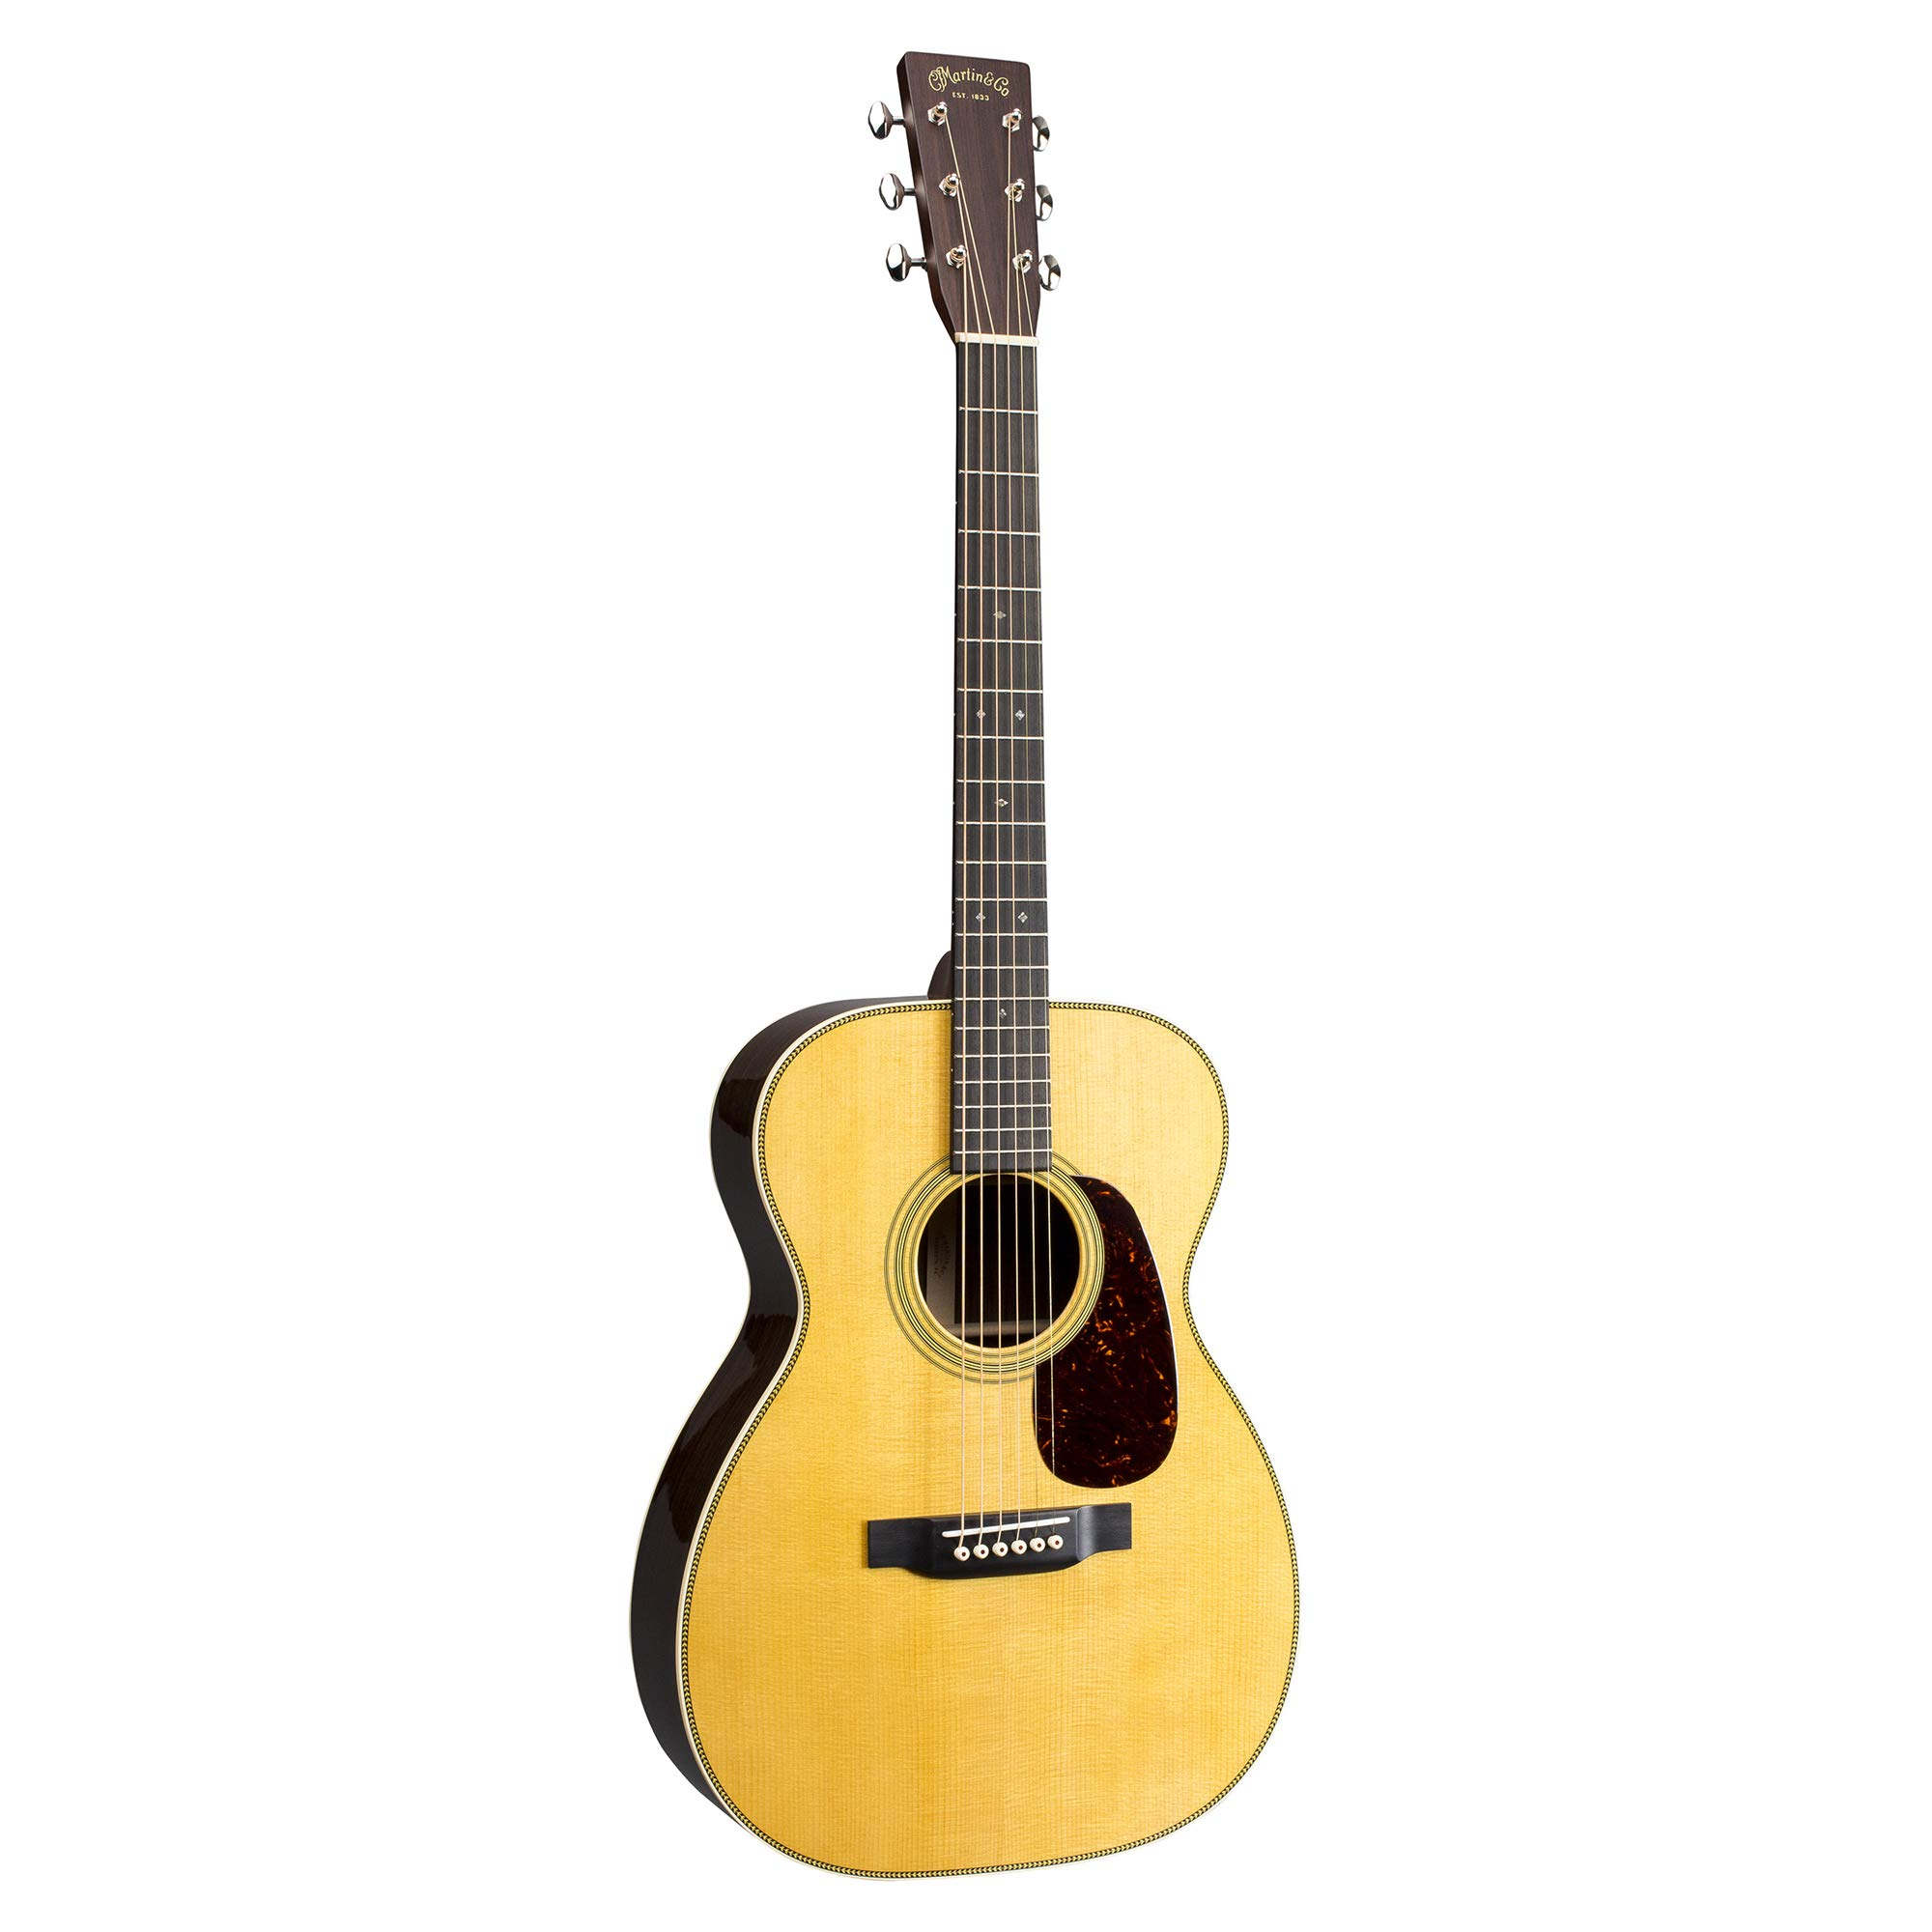 Martin Guitar Standard Series Acoustic Guitars, Hand-Built Martin Guitars with Authentic Wood 00-28